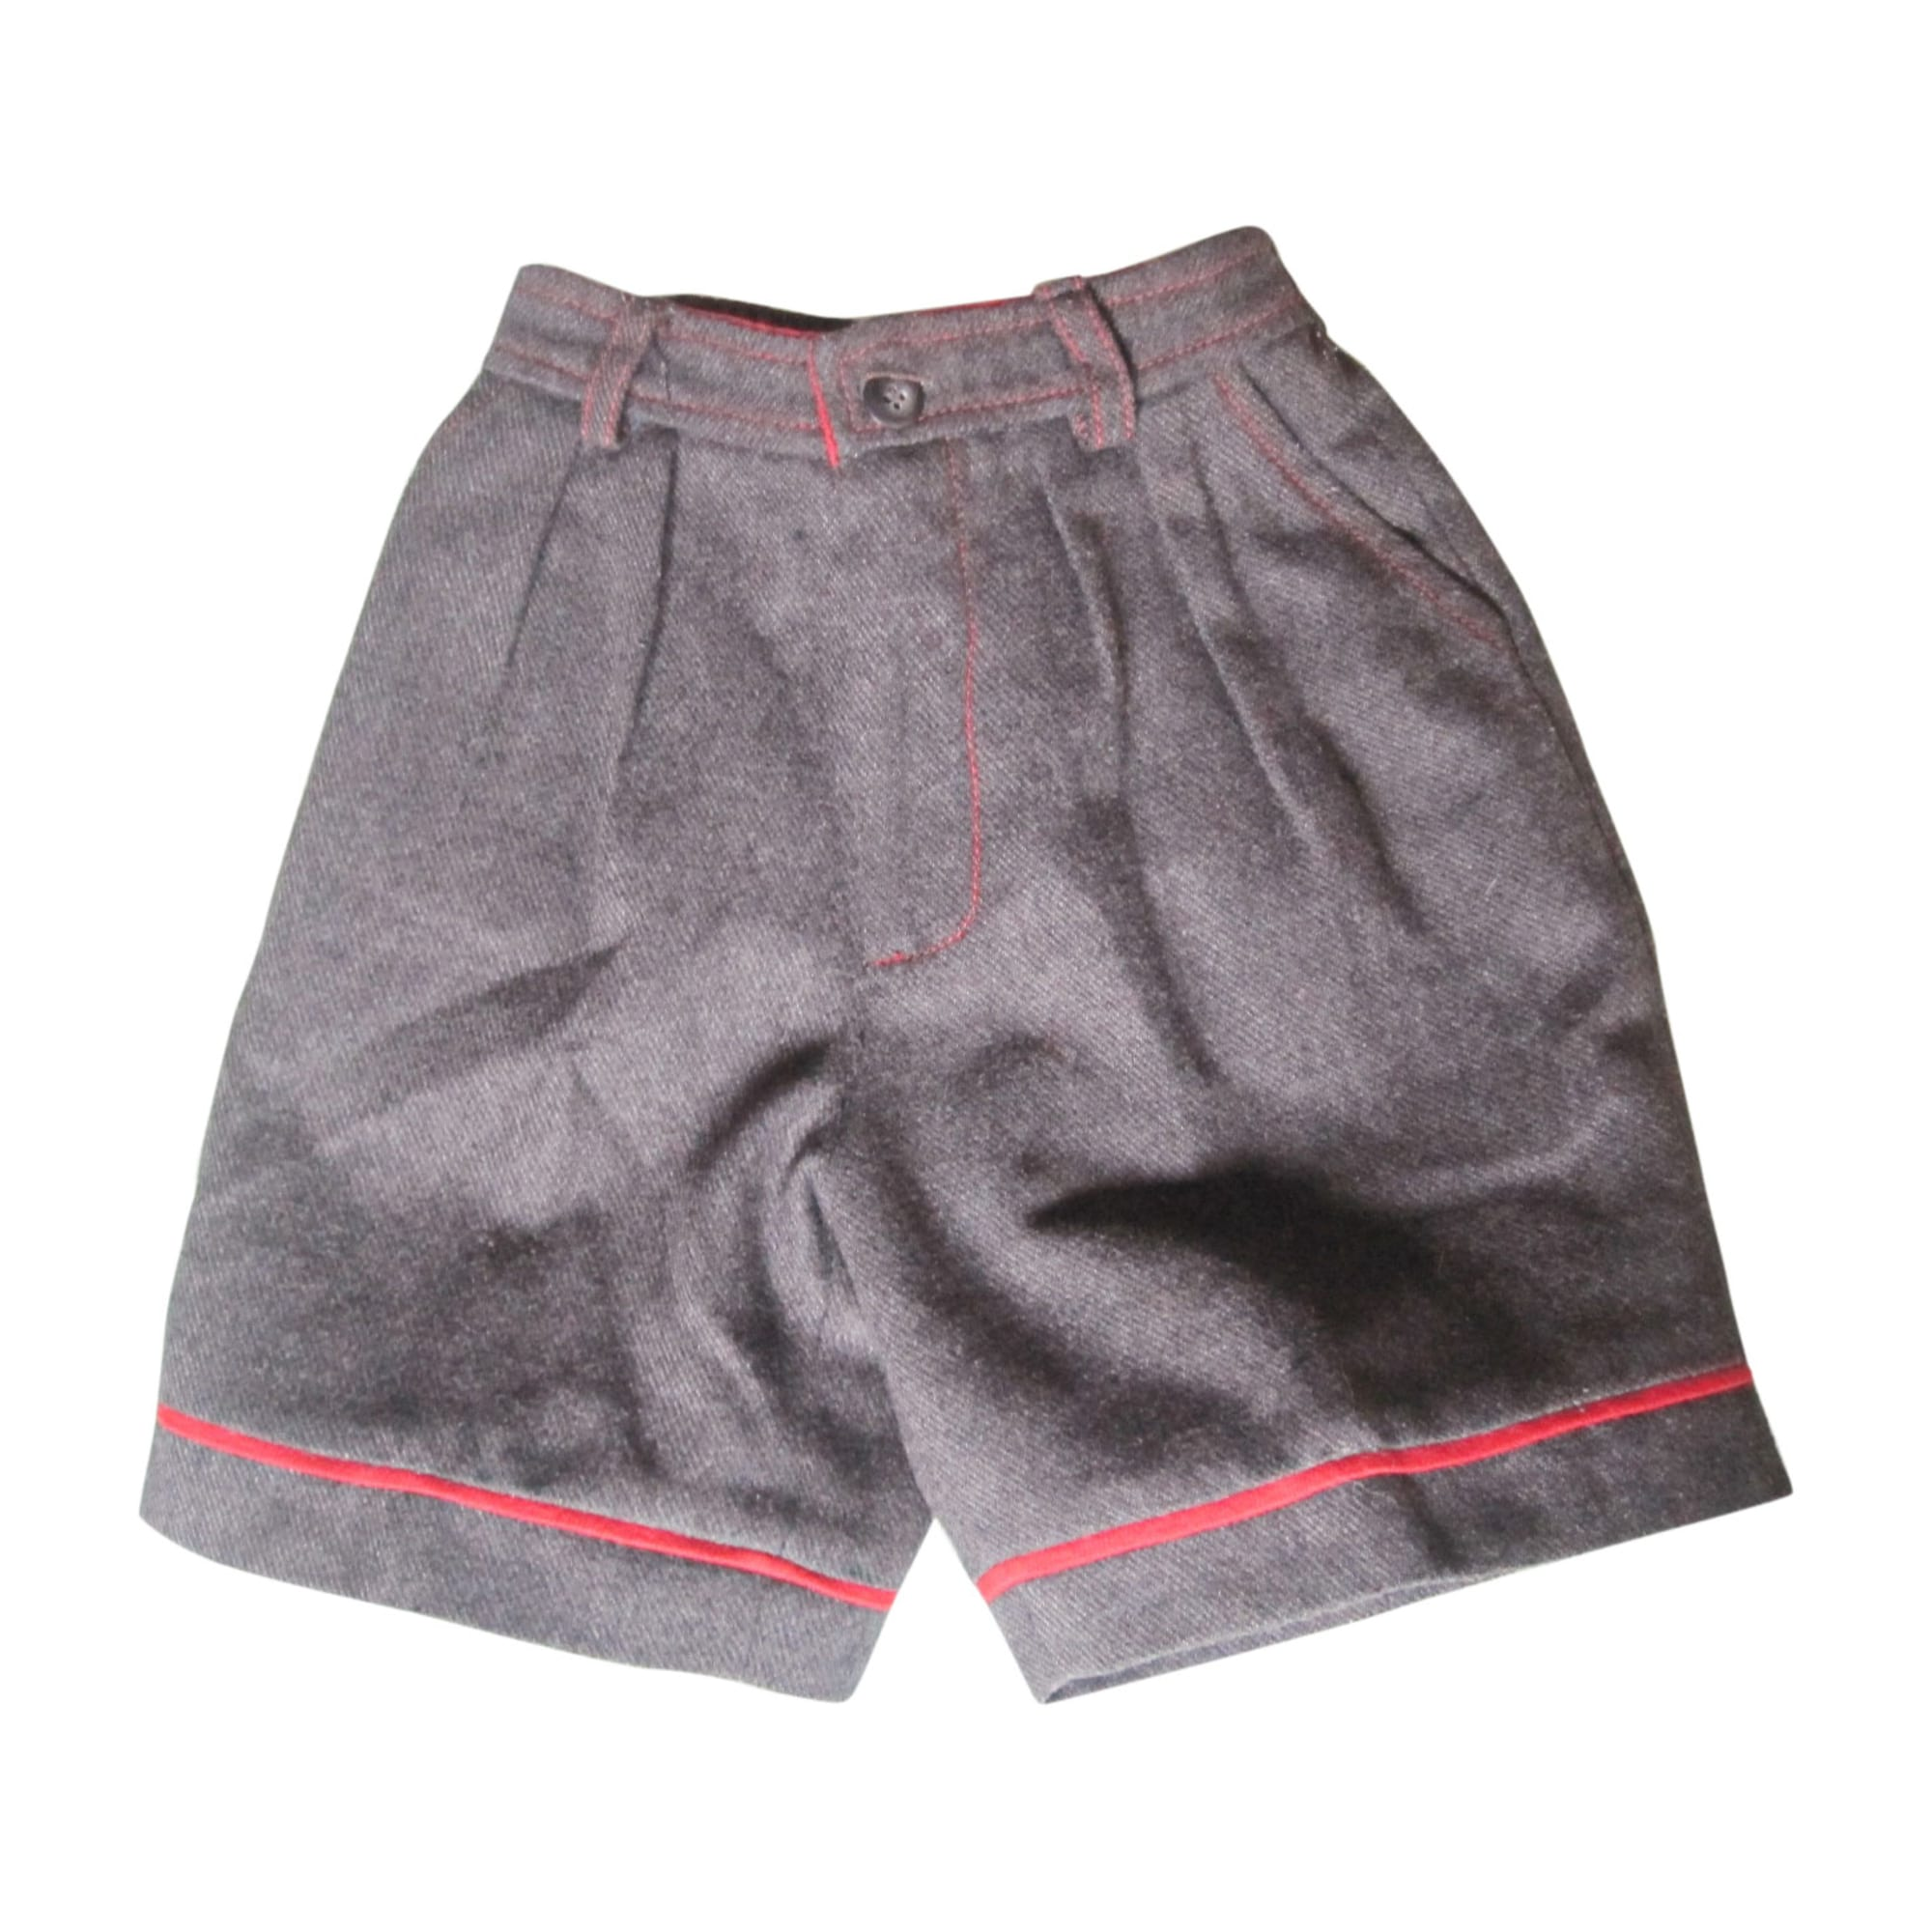 Bermuda Shorts BABY DIOR Gray, charcoal